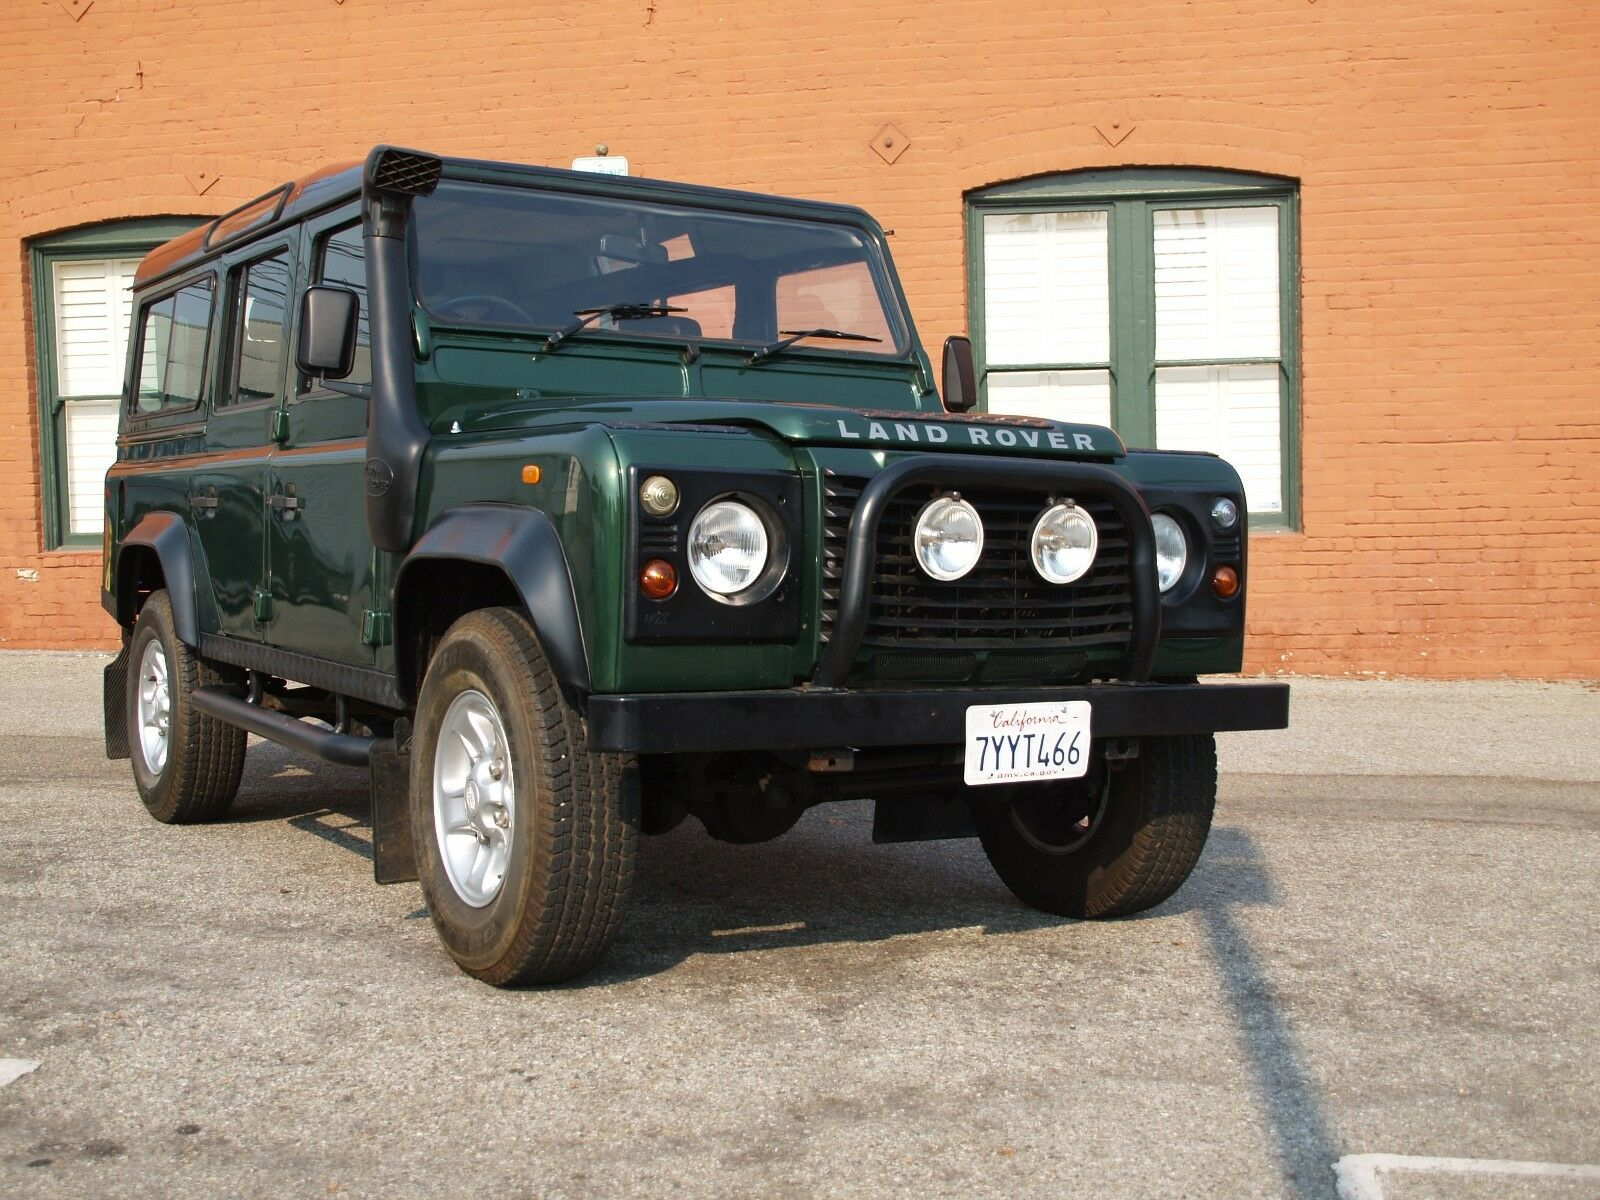 "1984 Land Rover Defender 109 Series III RARE RARE 1984 Series III Land Rover Defender 109"" 5-door Station Wagon"